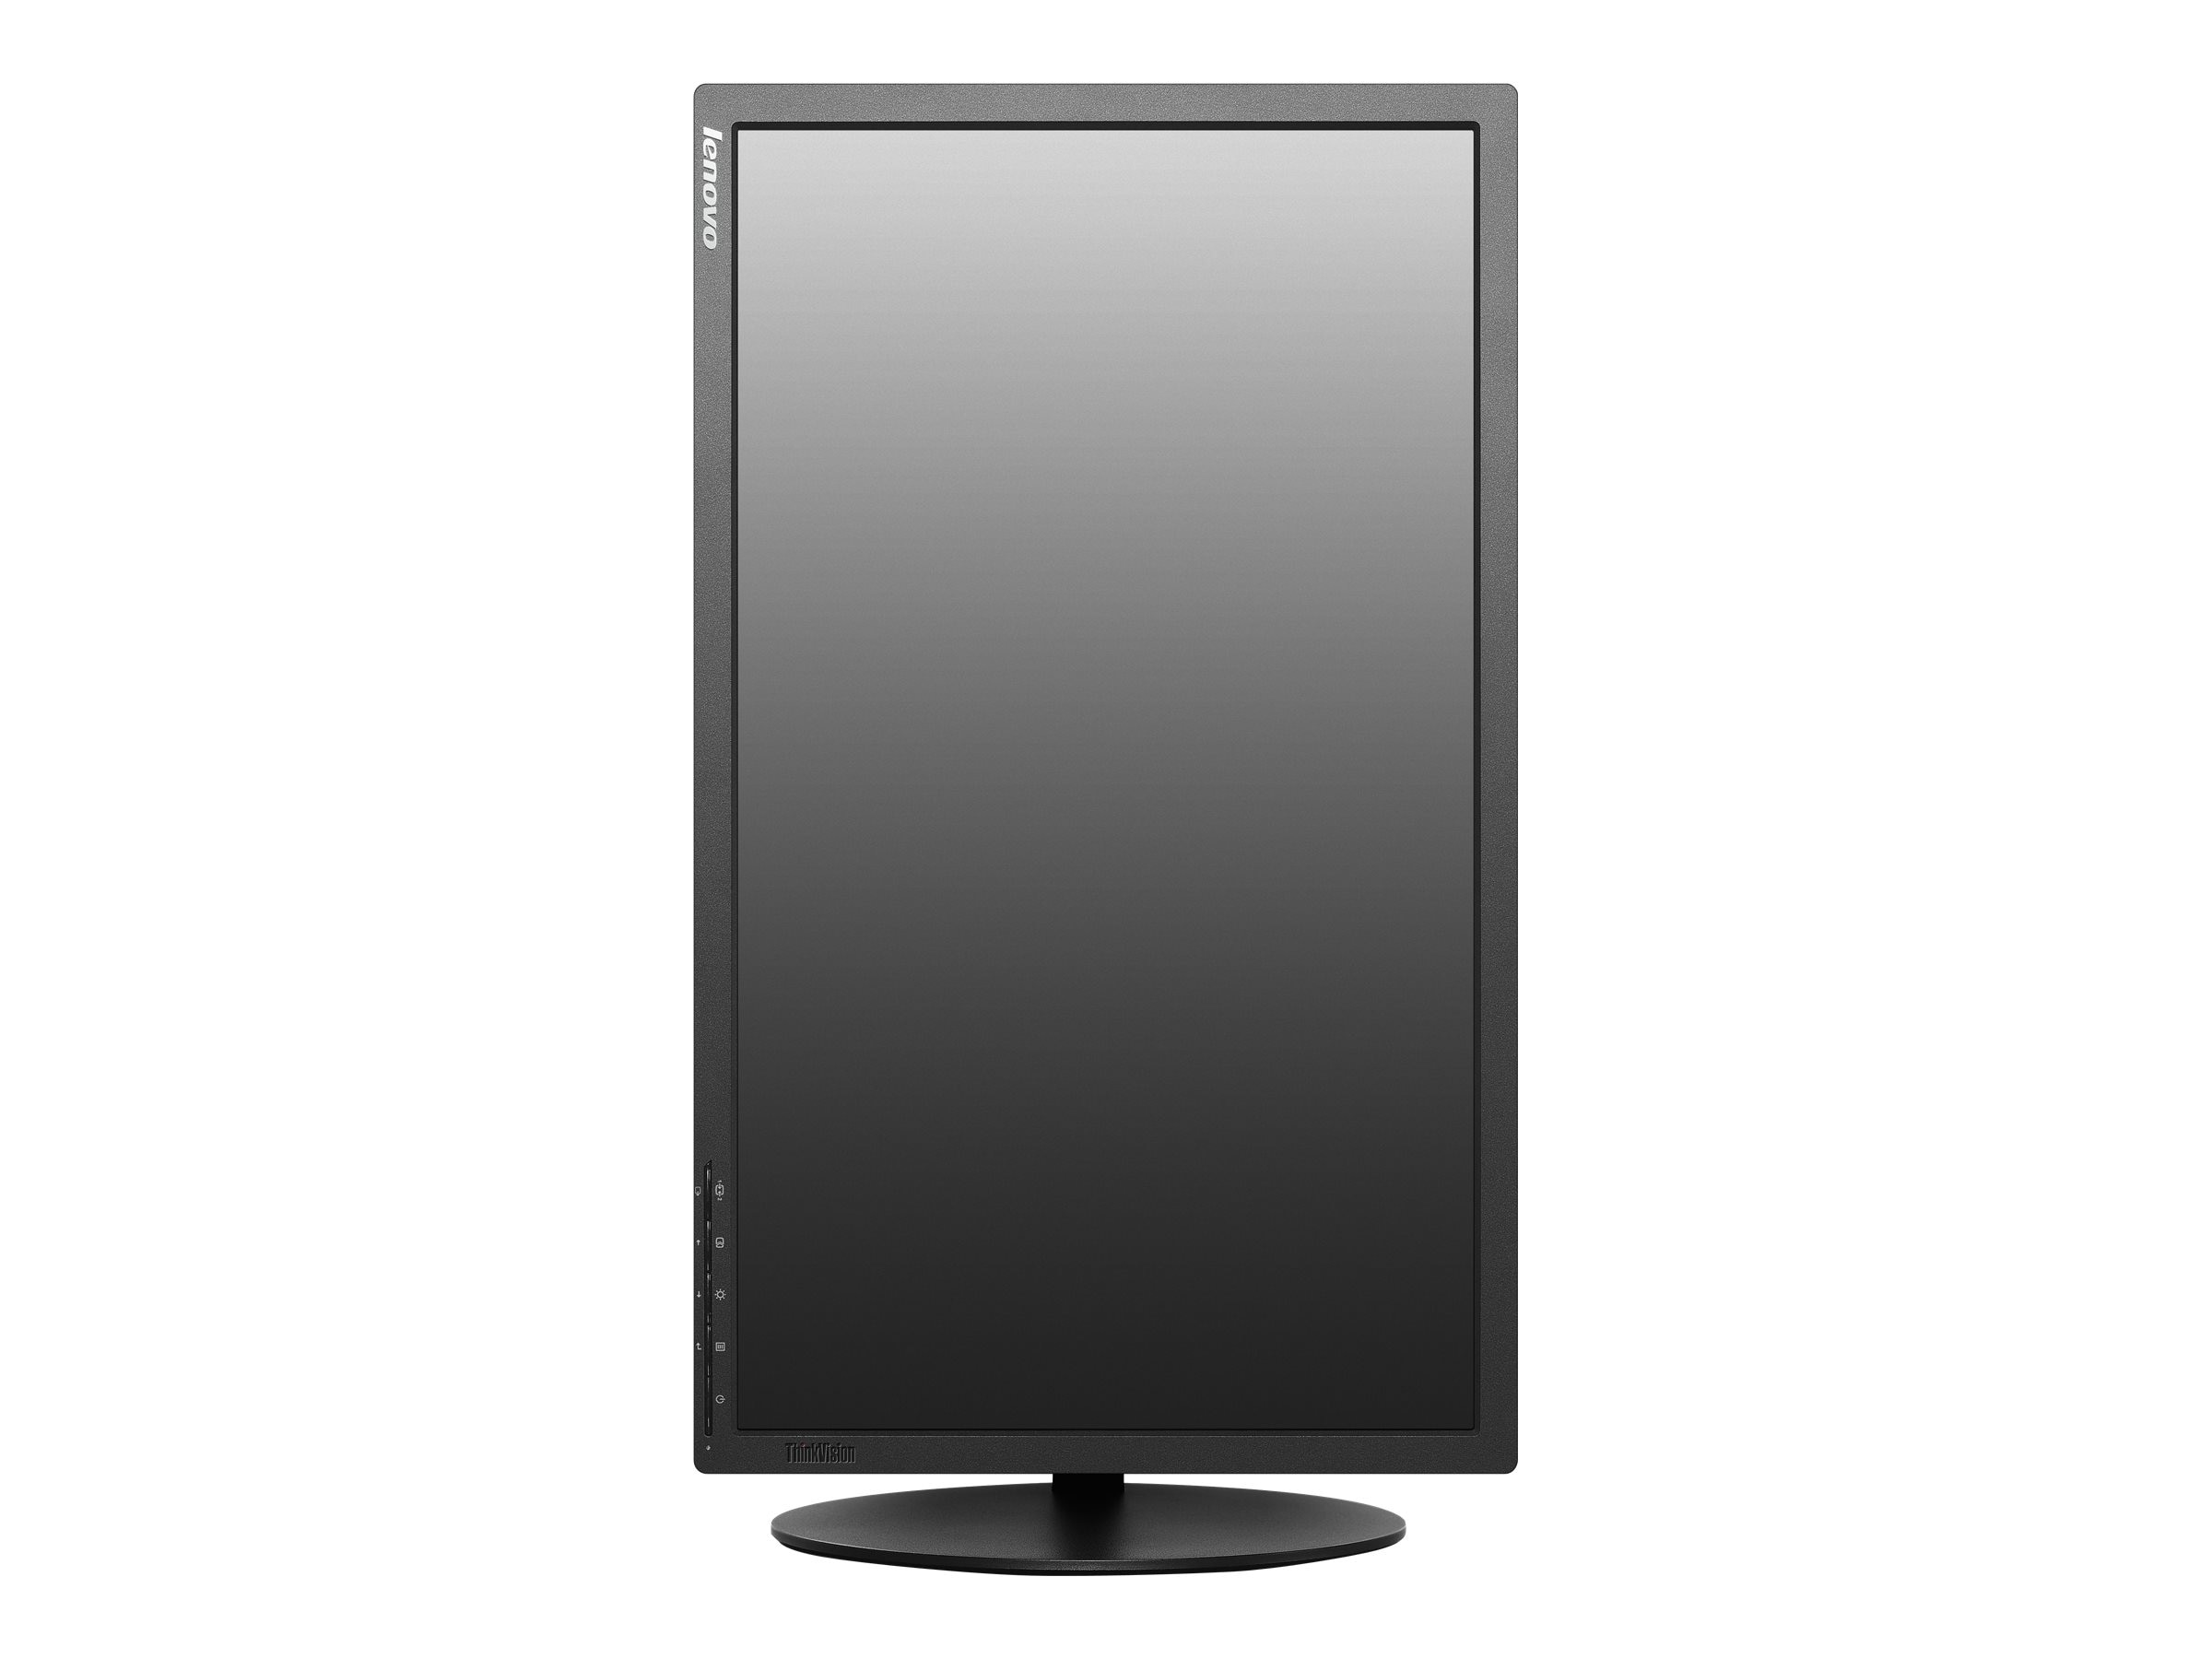 Lenovo 23 T2324P Full HD LED-LCD Monitor, Black, 60C7MAR1US, 19021354, Monitors - LED-LCD